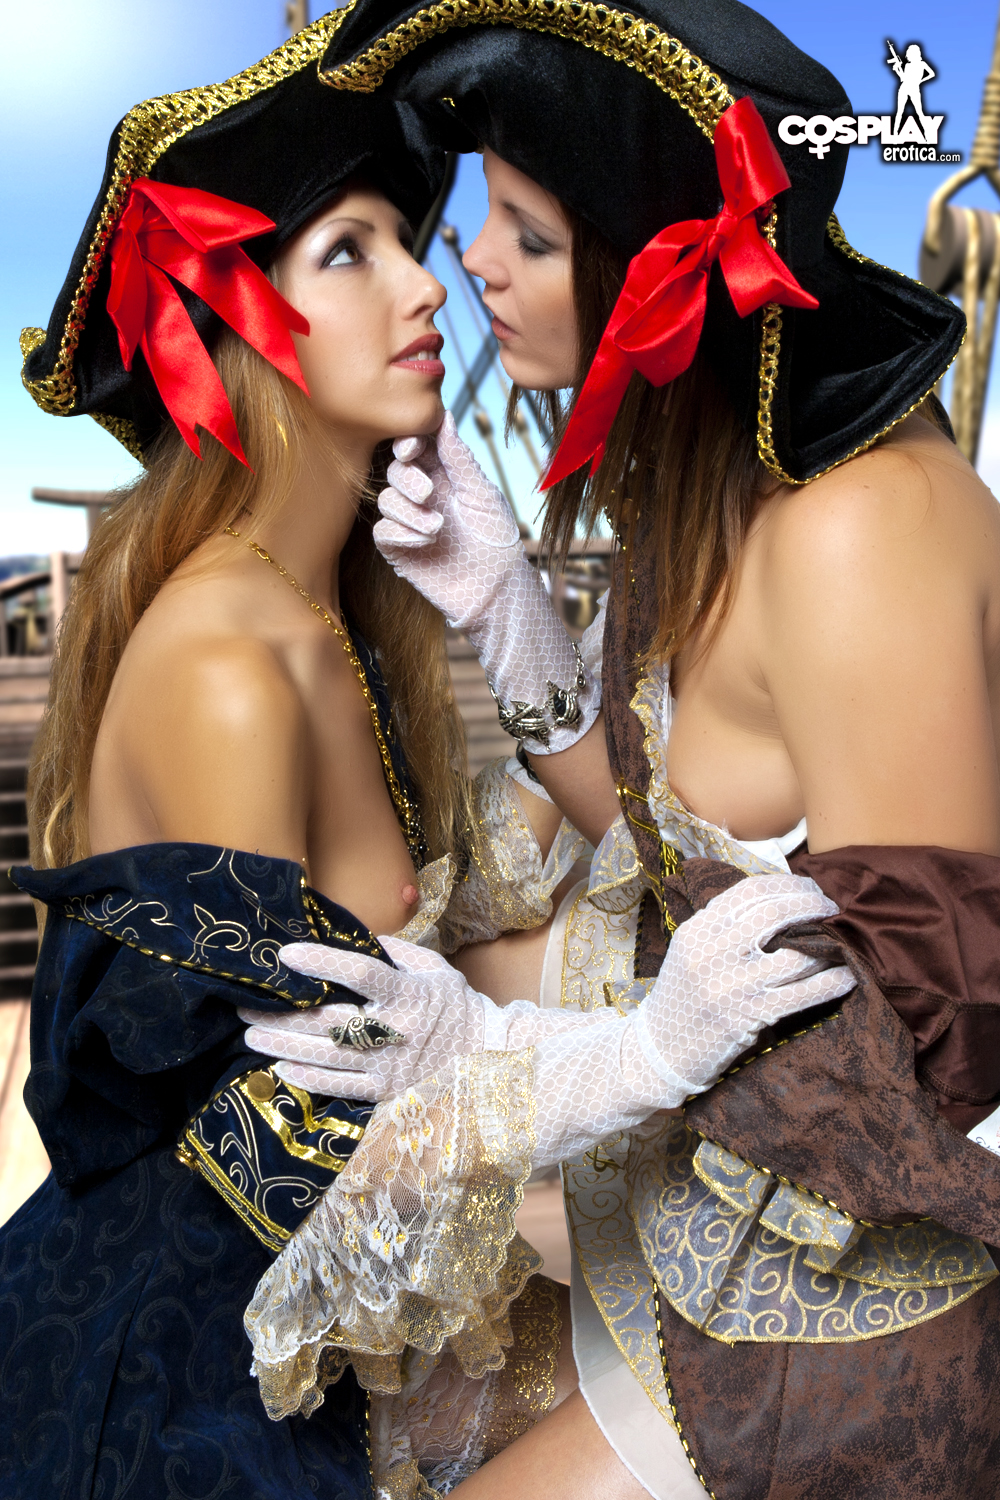 Erotic pic pirates sexy movies